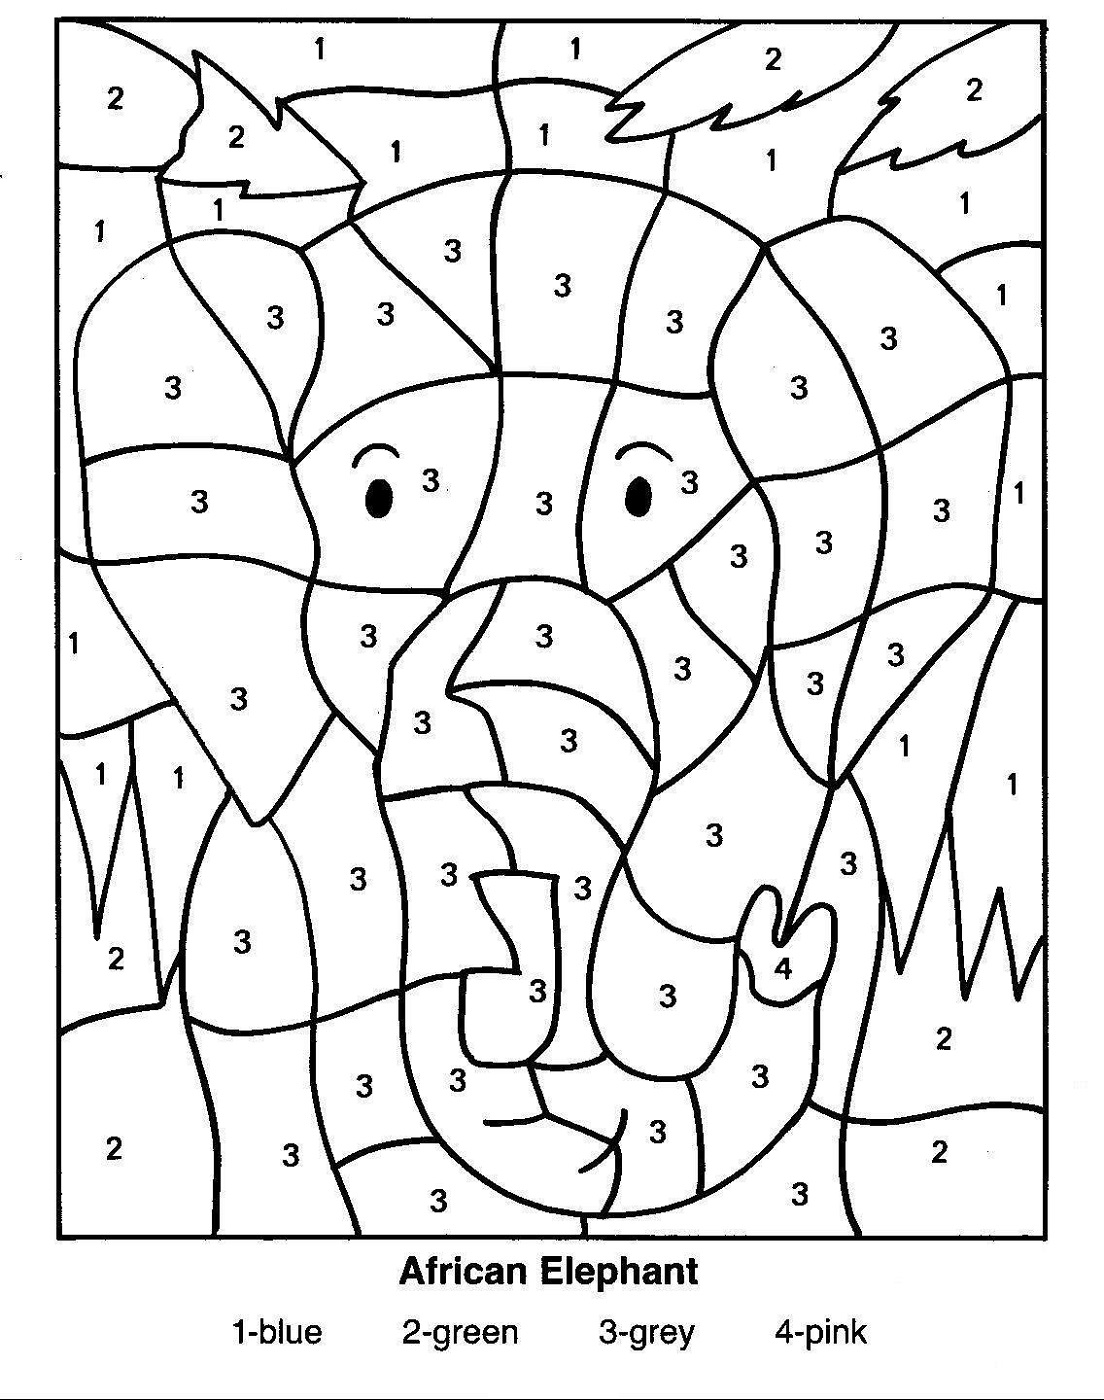 coloring by number coloring pages free color by numbers worksheets activity shelter pages number coloring coloring by